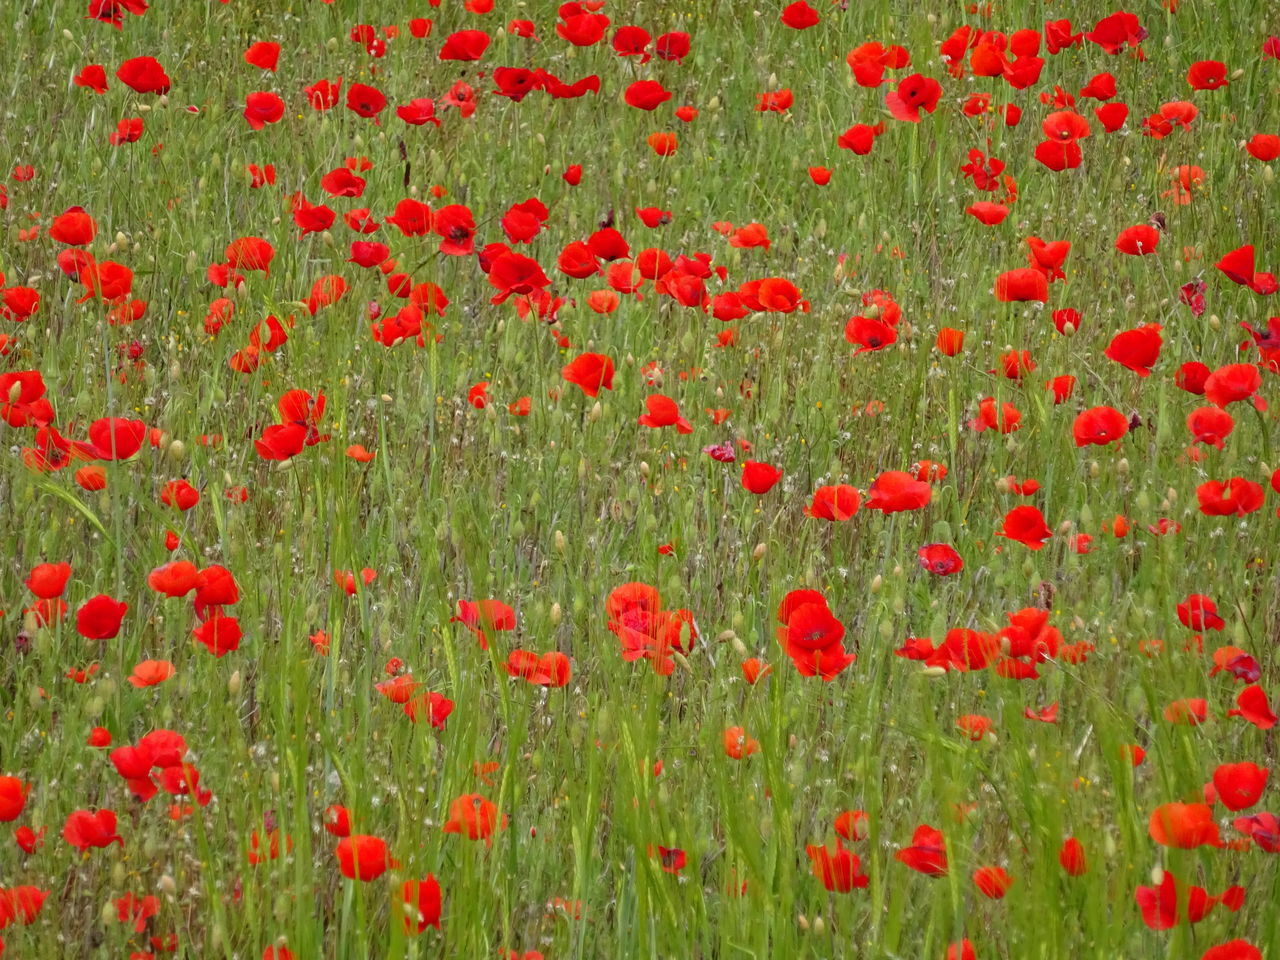 red, flower, poppy, field, green color, freshness, grass, nature, growth, day, plant, no people, abundance, backgrounds, summer, meadow, full frame, petal, outdoors, agriculture, flower head, beauty in nature, flowerbed, springtime, rural scene, fragility, herbal medicine, close-up